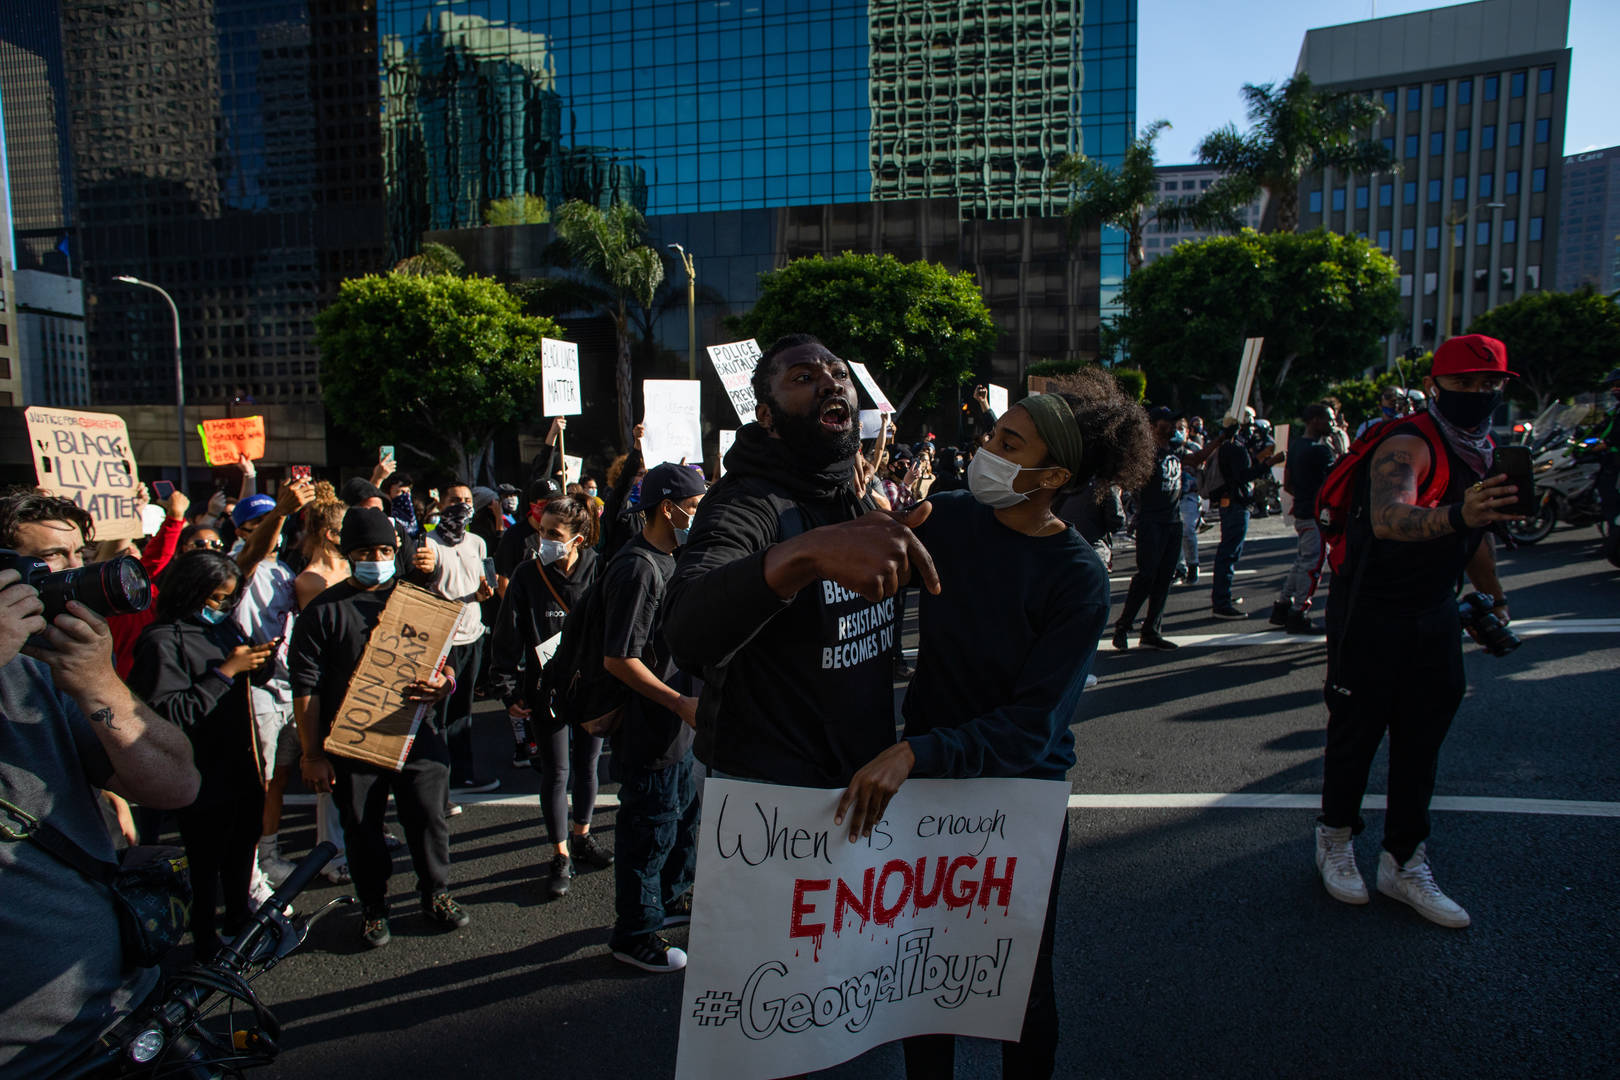 L.A. Mayor Imposes Curfew Following Protests Over Dead Of George Floyd